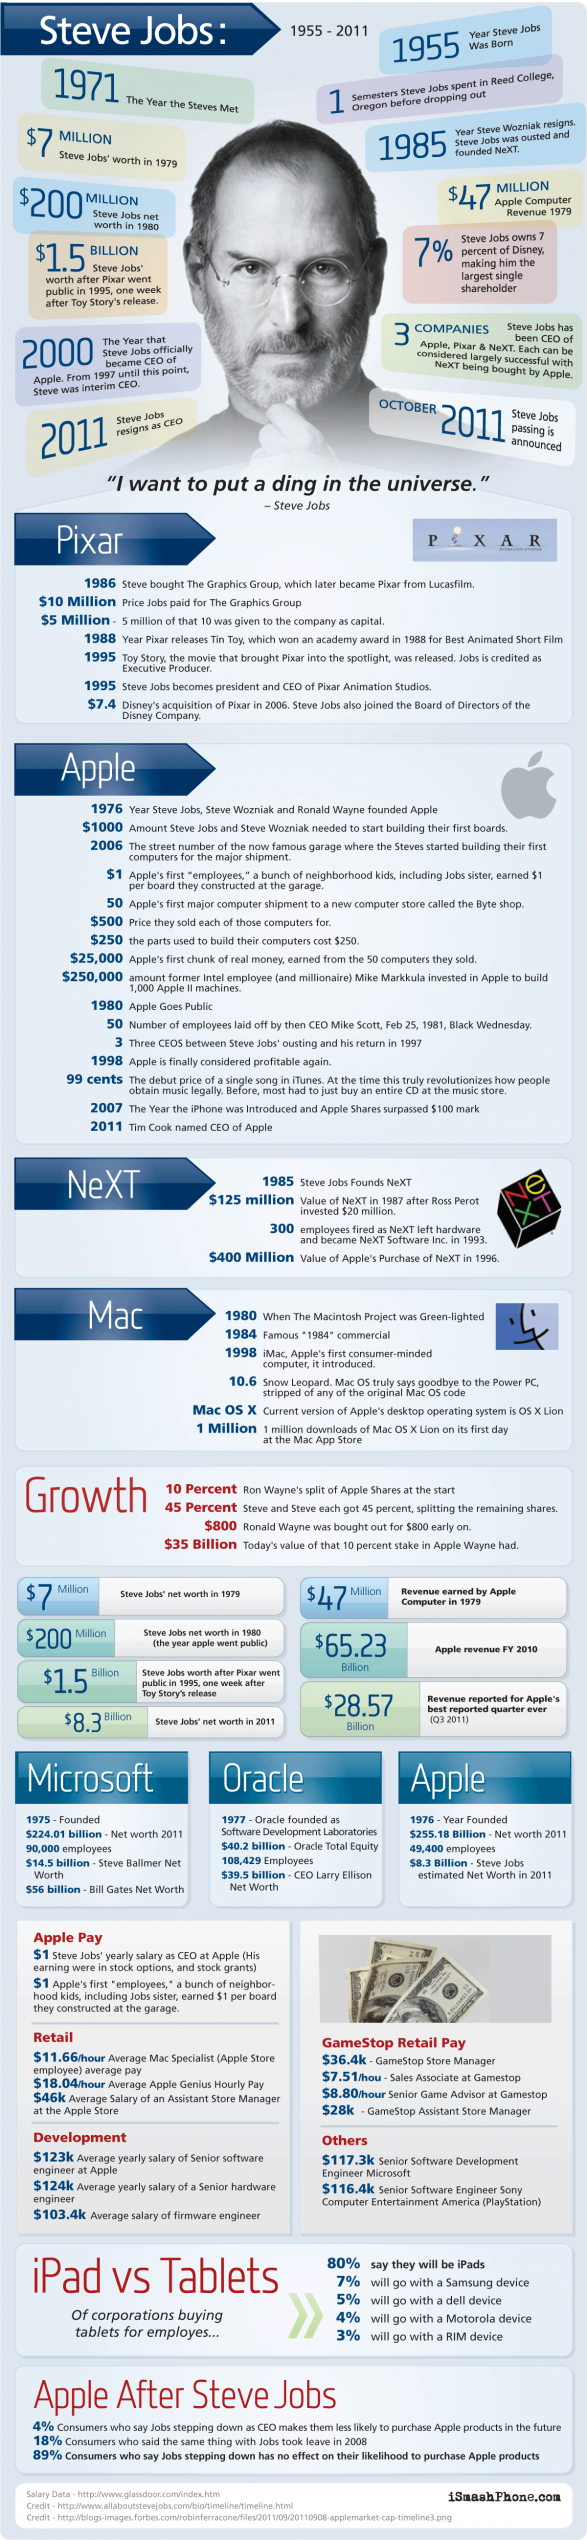 Steve Jobs By the Numbers